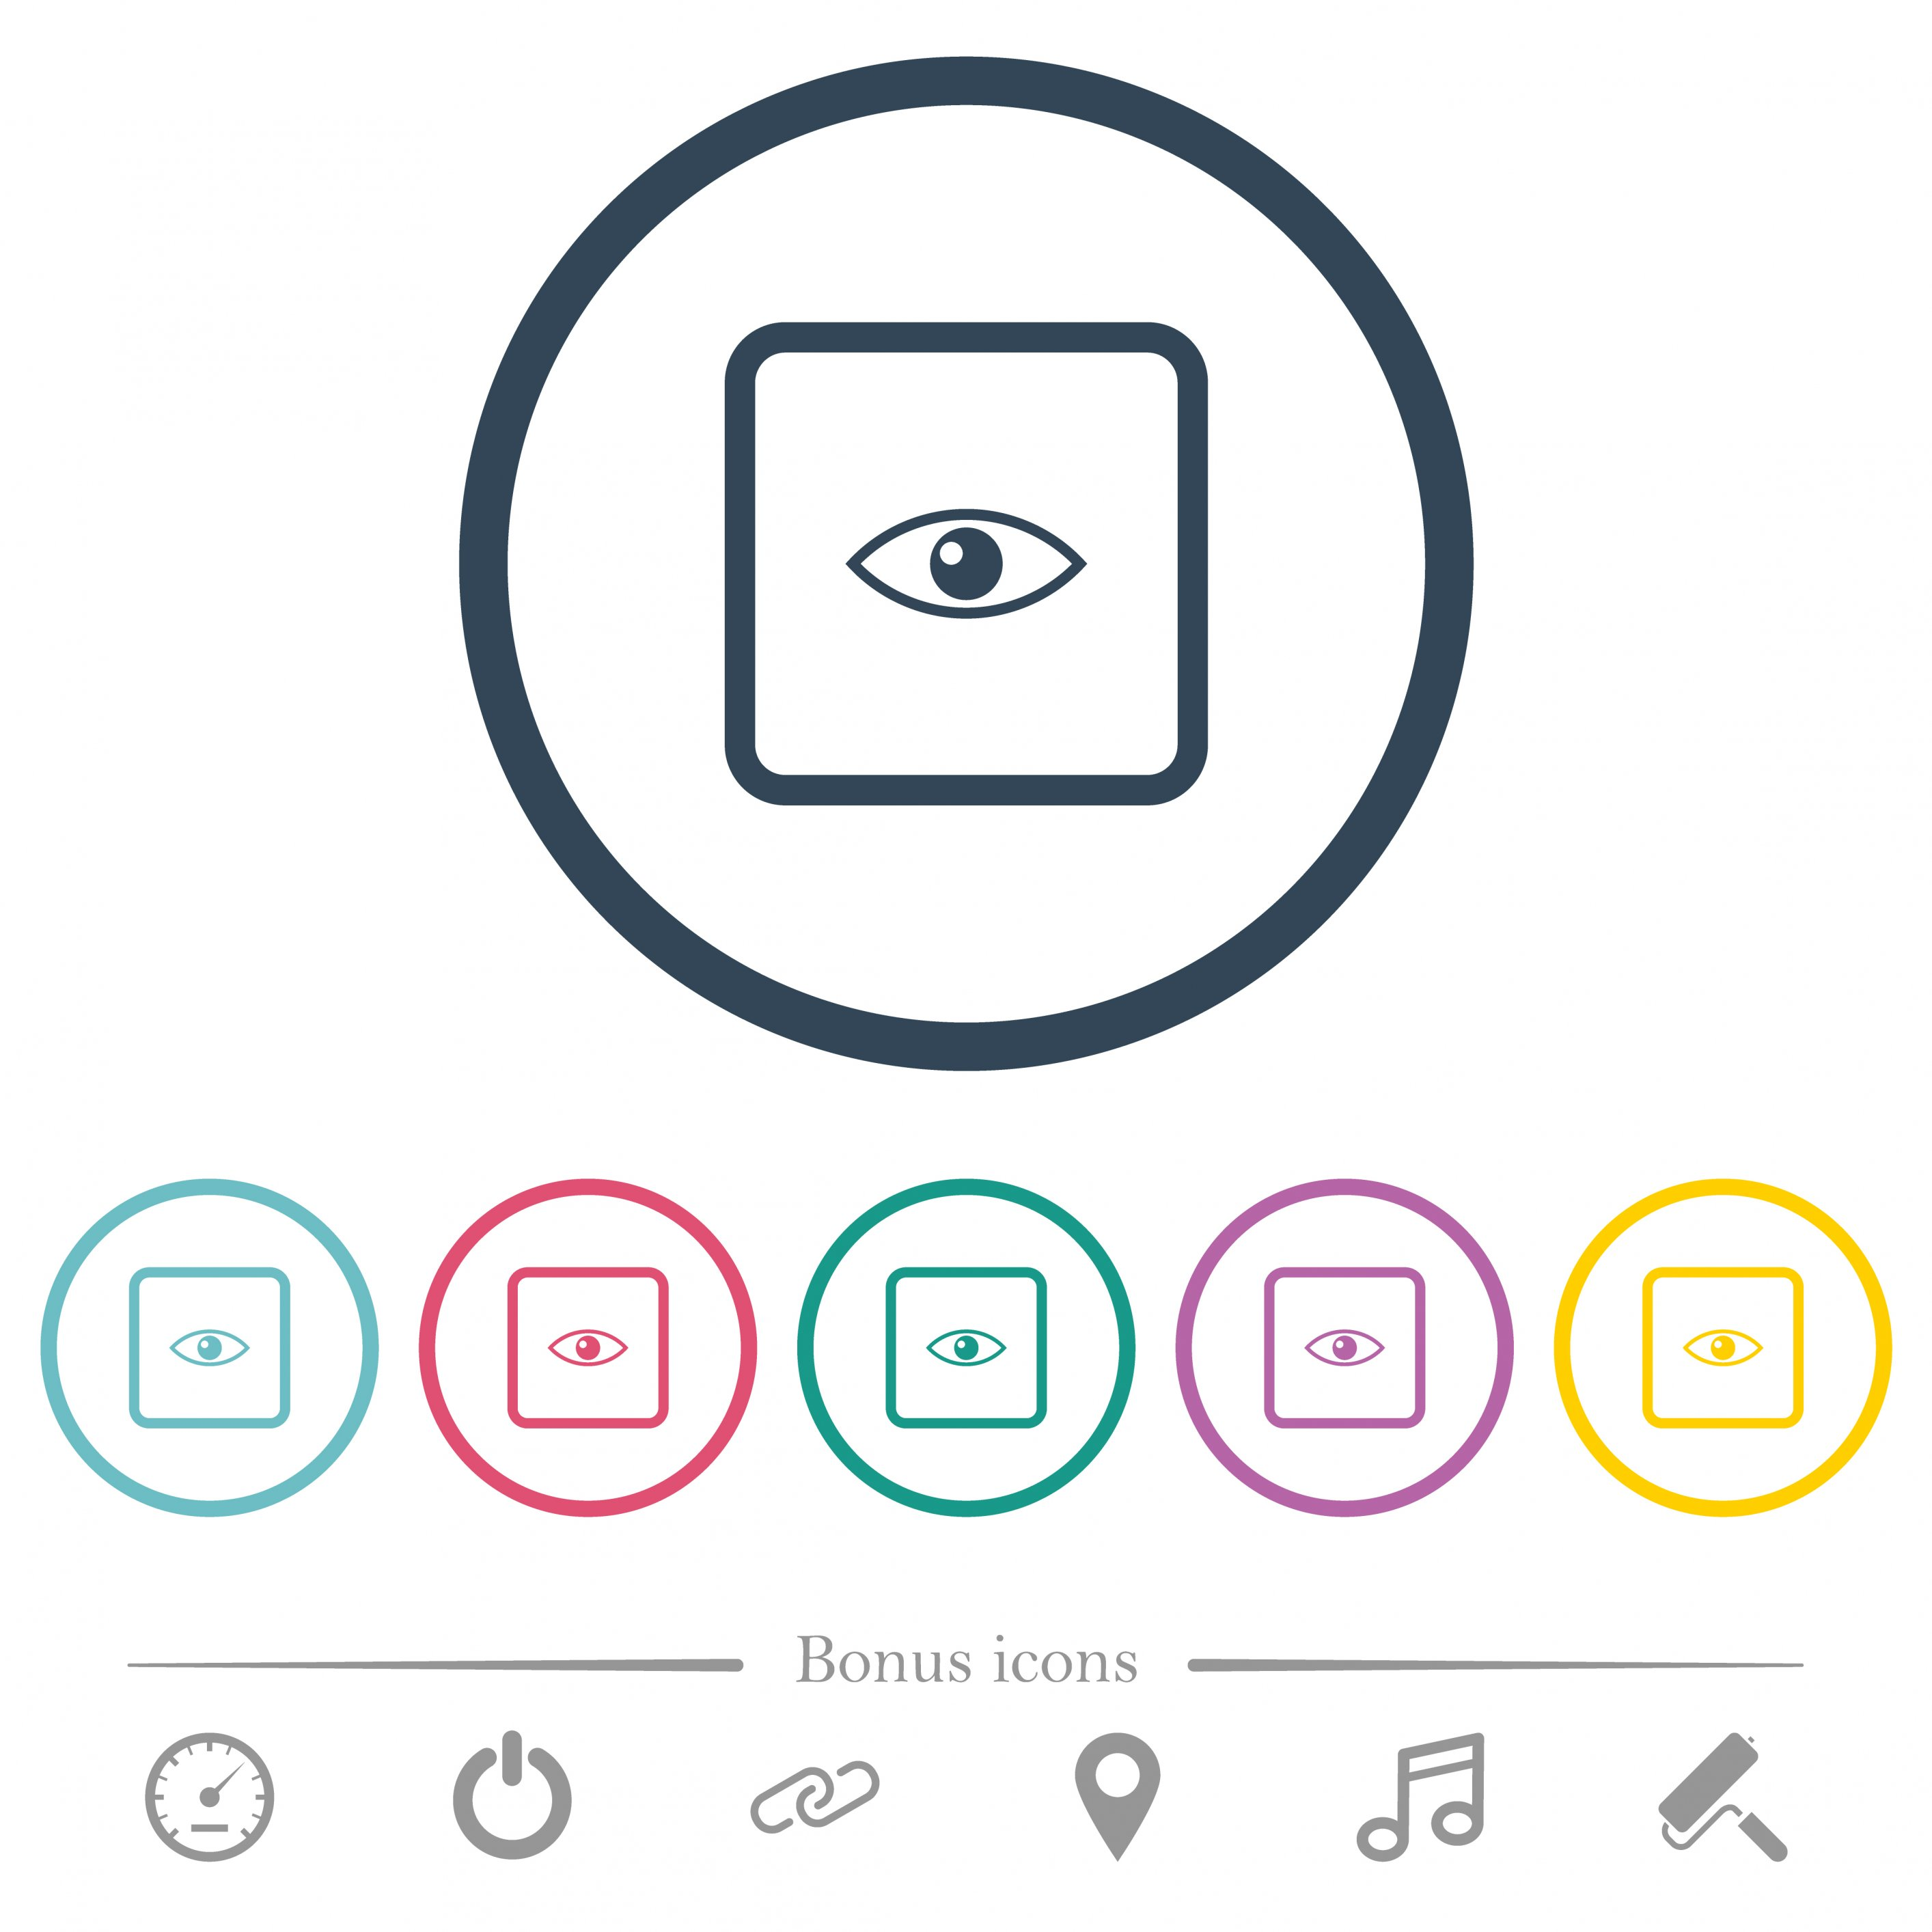 Preview object flat color icons in round outlines. 6 bonus icons included. - Free image